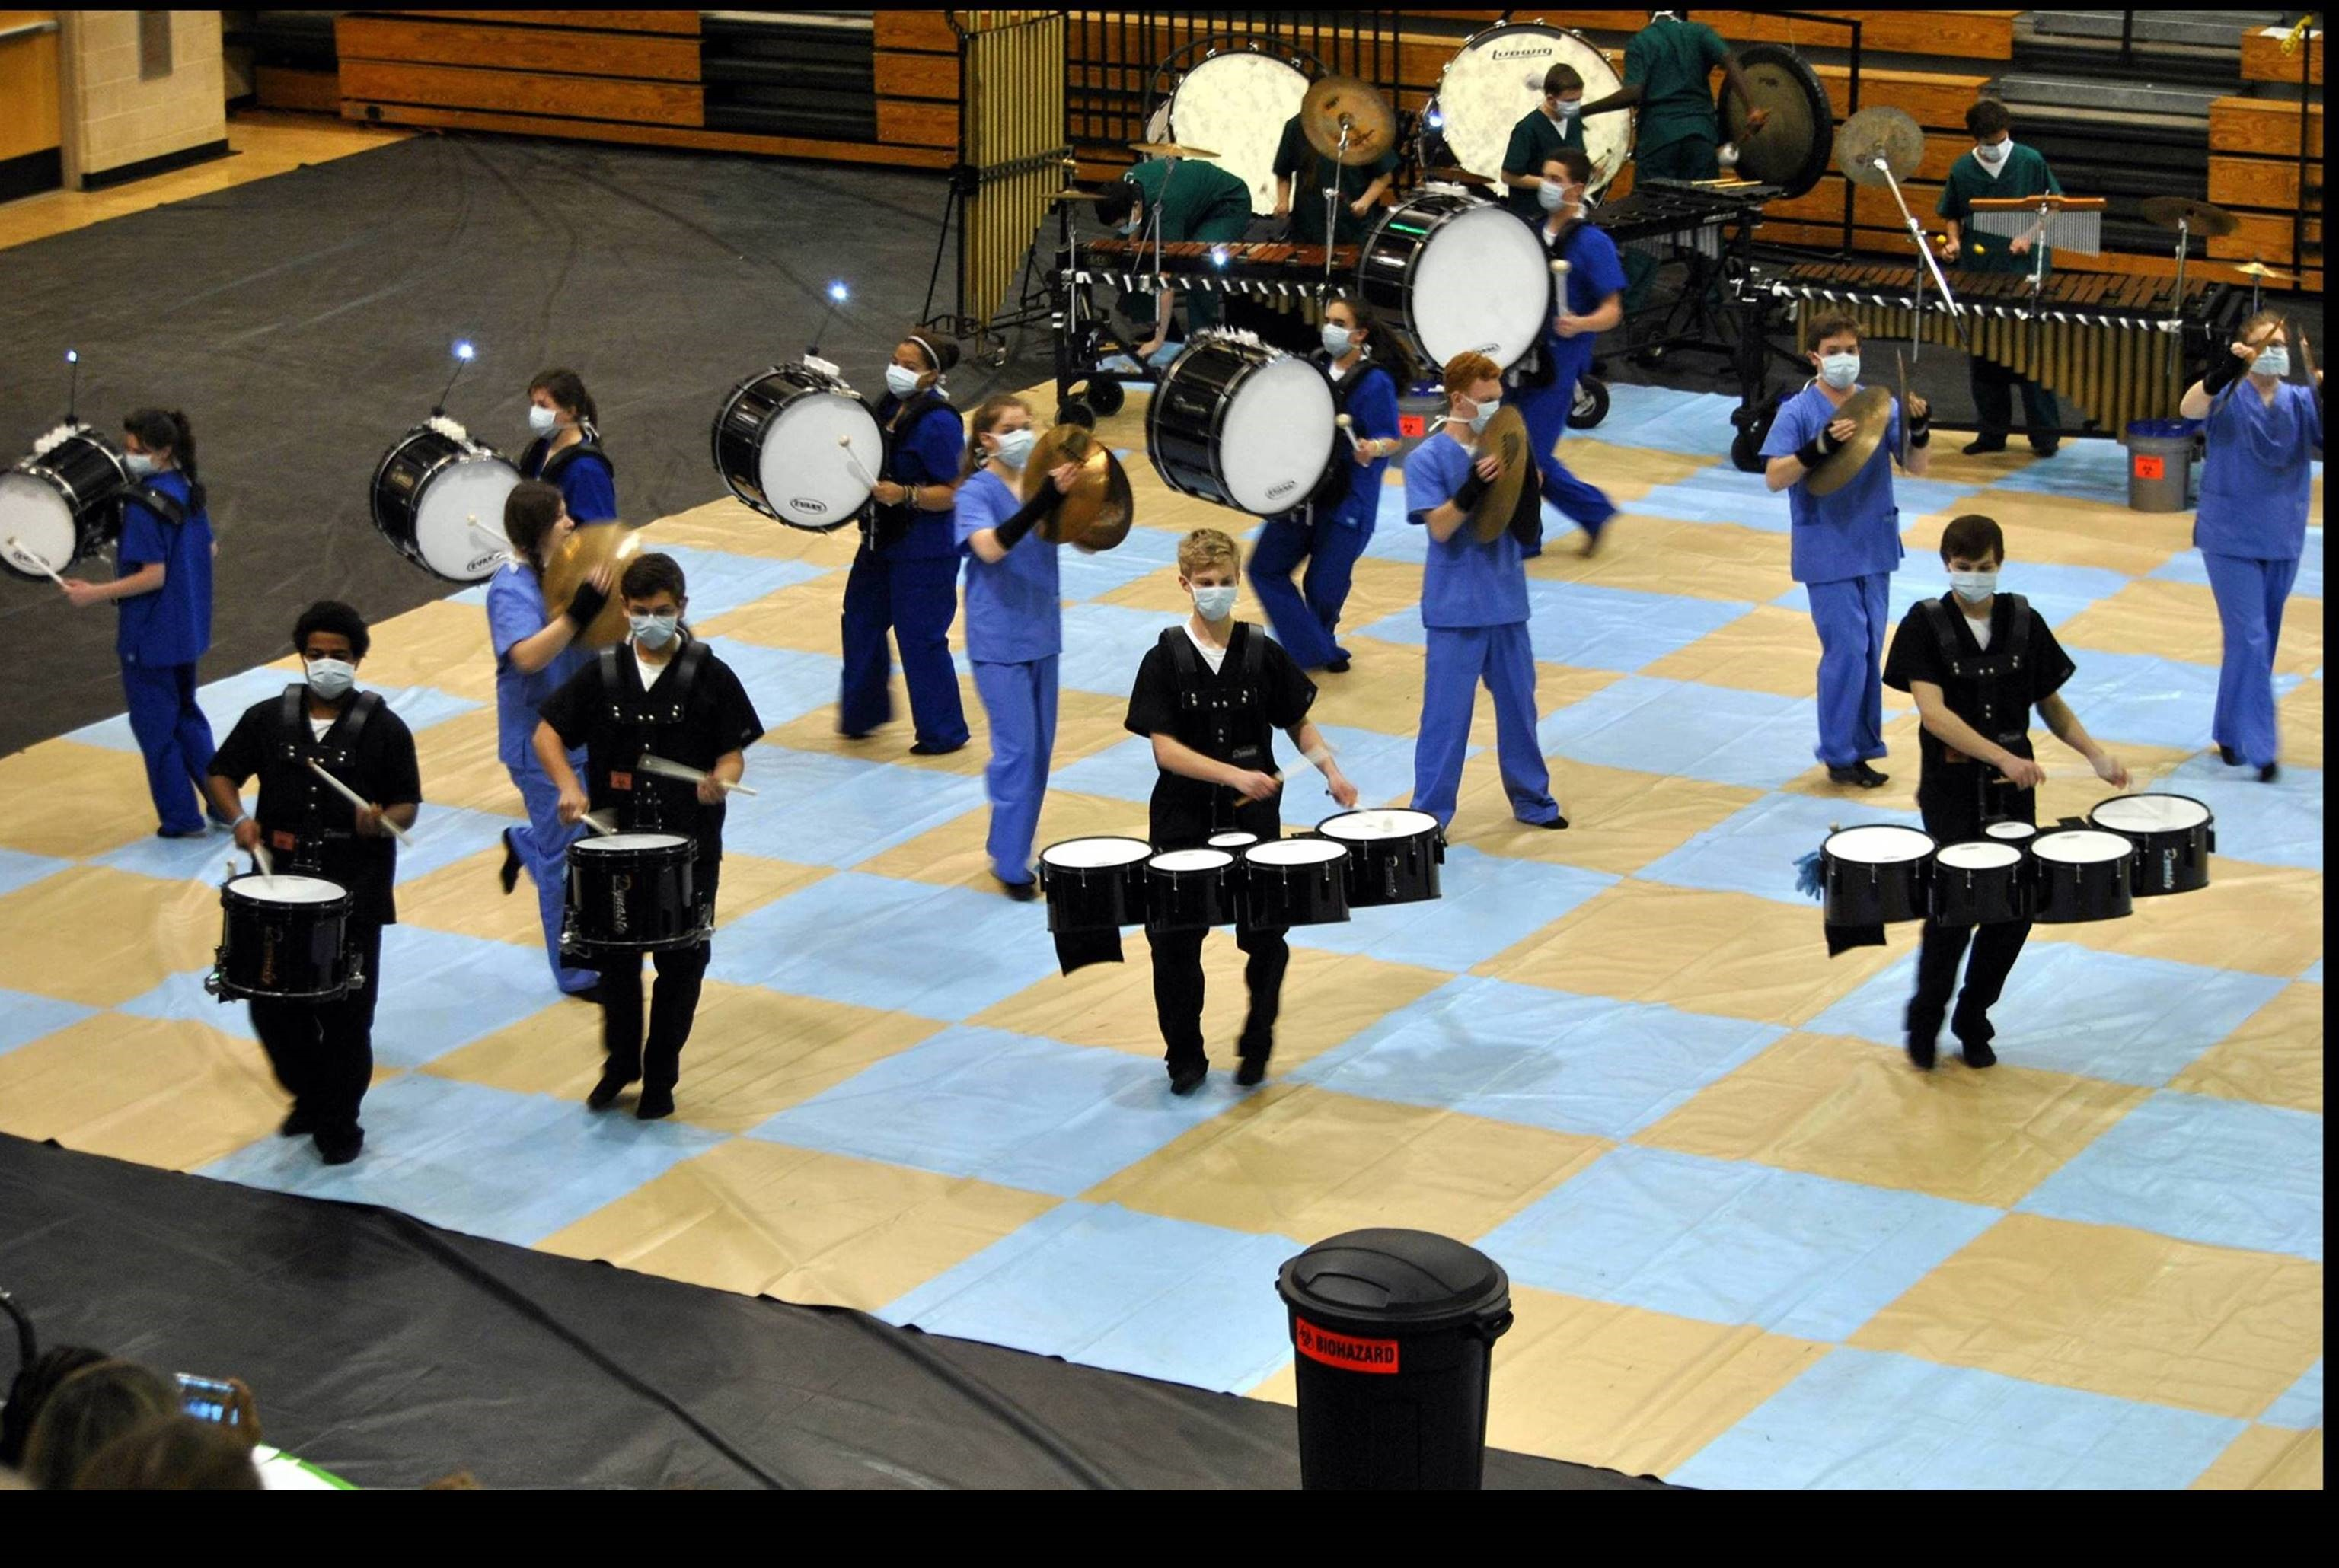 drumline-color-1.jpg